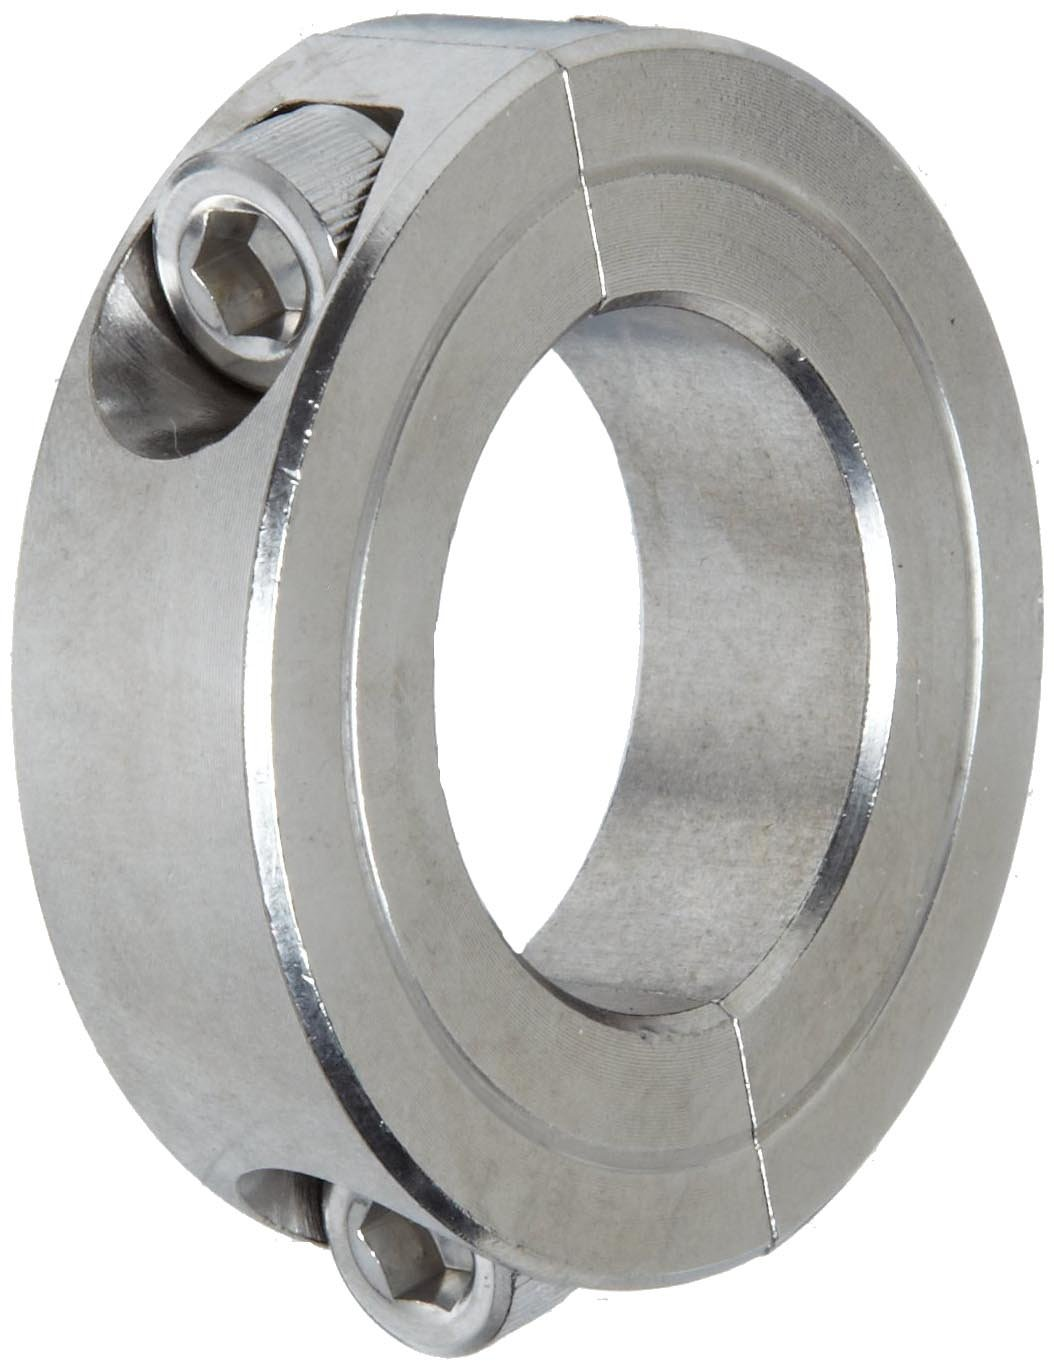 Climax Metal 2C-112-S T303 Stainless Steel Two-Piece Clamping Collar, 1-1/8'' Bore Size, 1-7/8'' OD, With 1/4-28 x 3/4 Set Screw